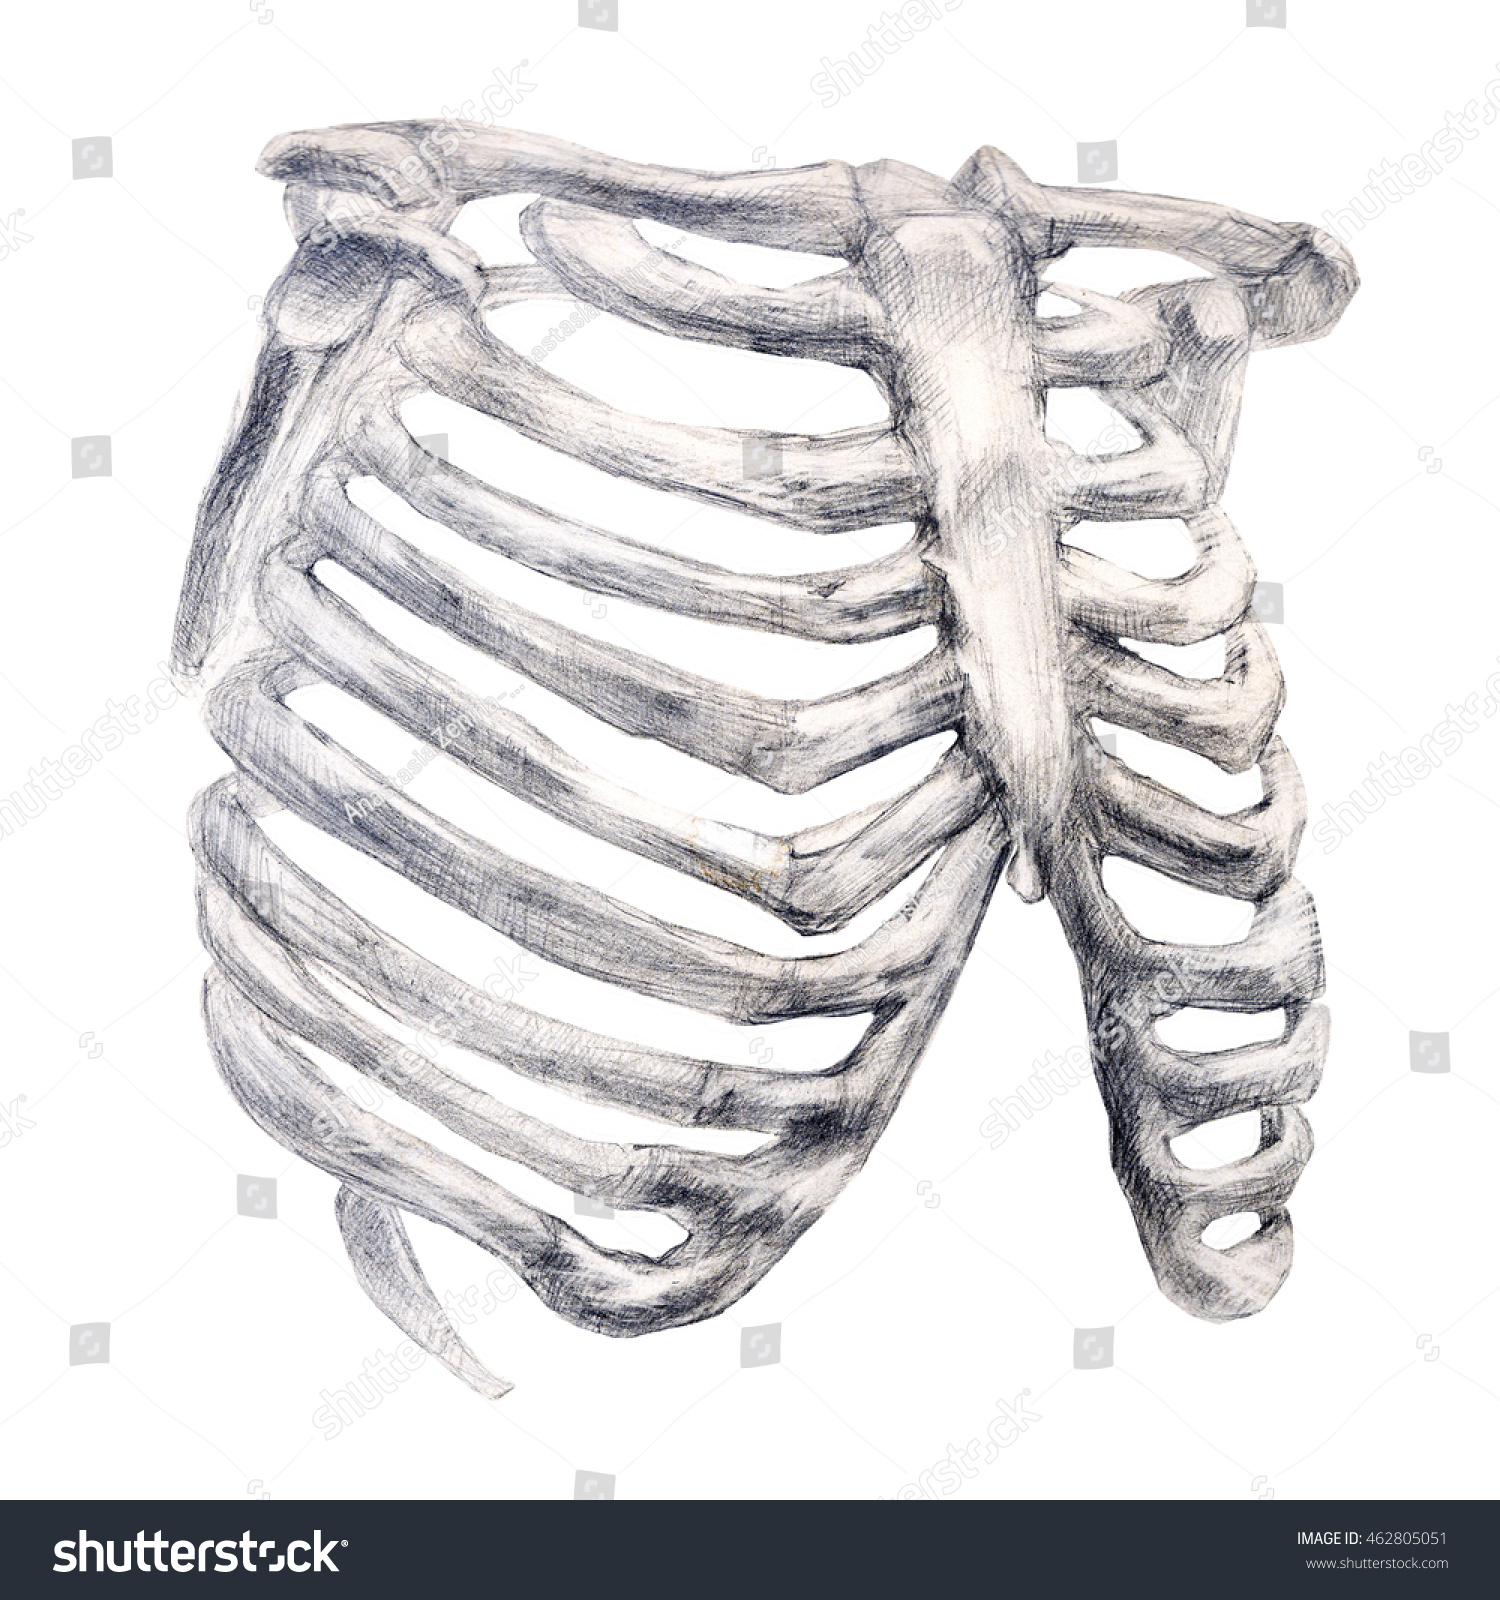 Hand Drawing Bone Skeleton Anatomical Drawing Stock Illustration ...